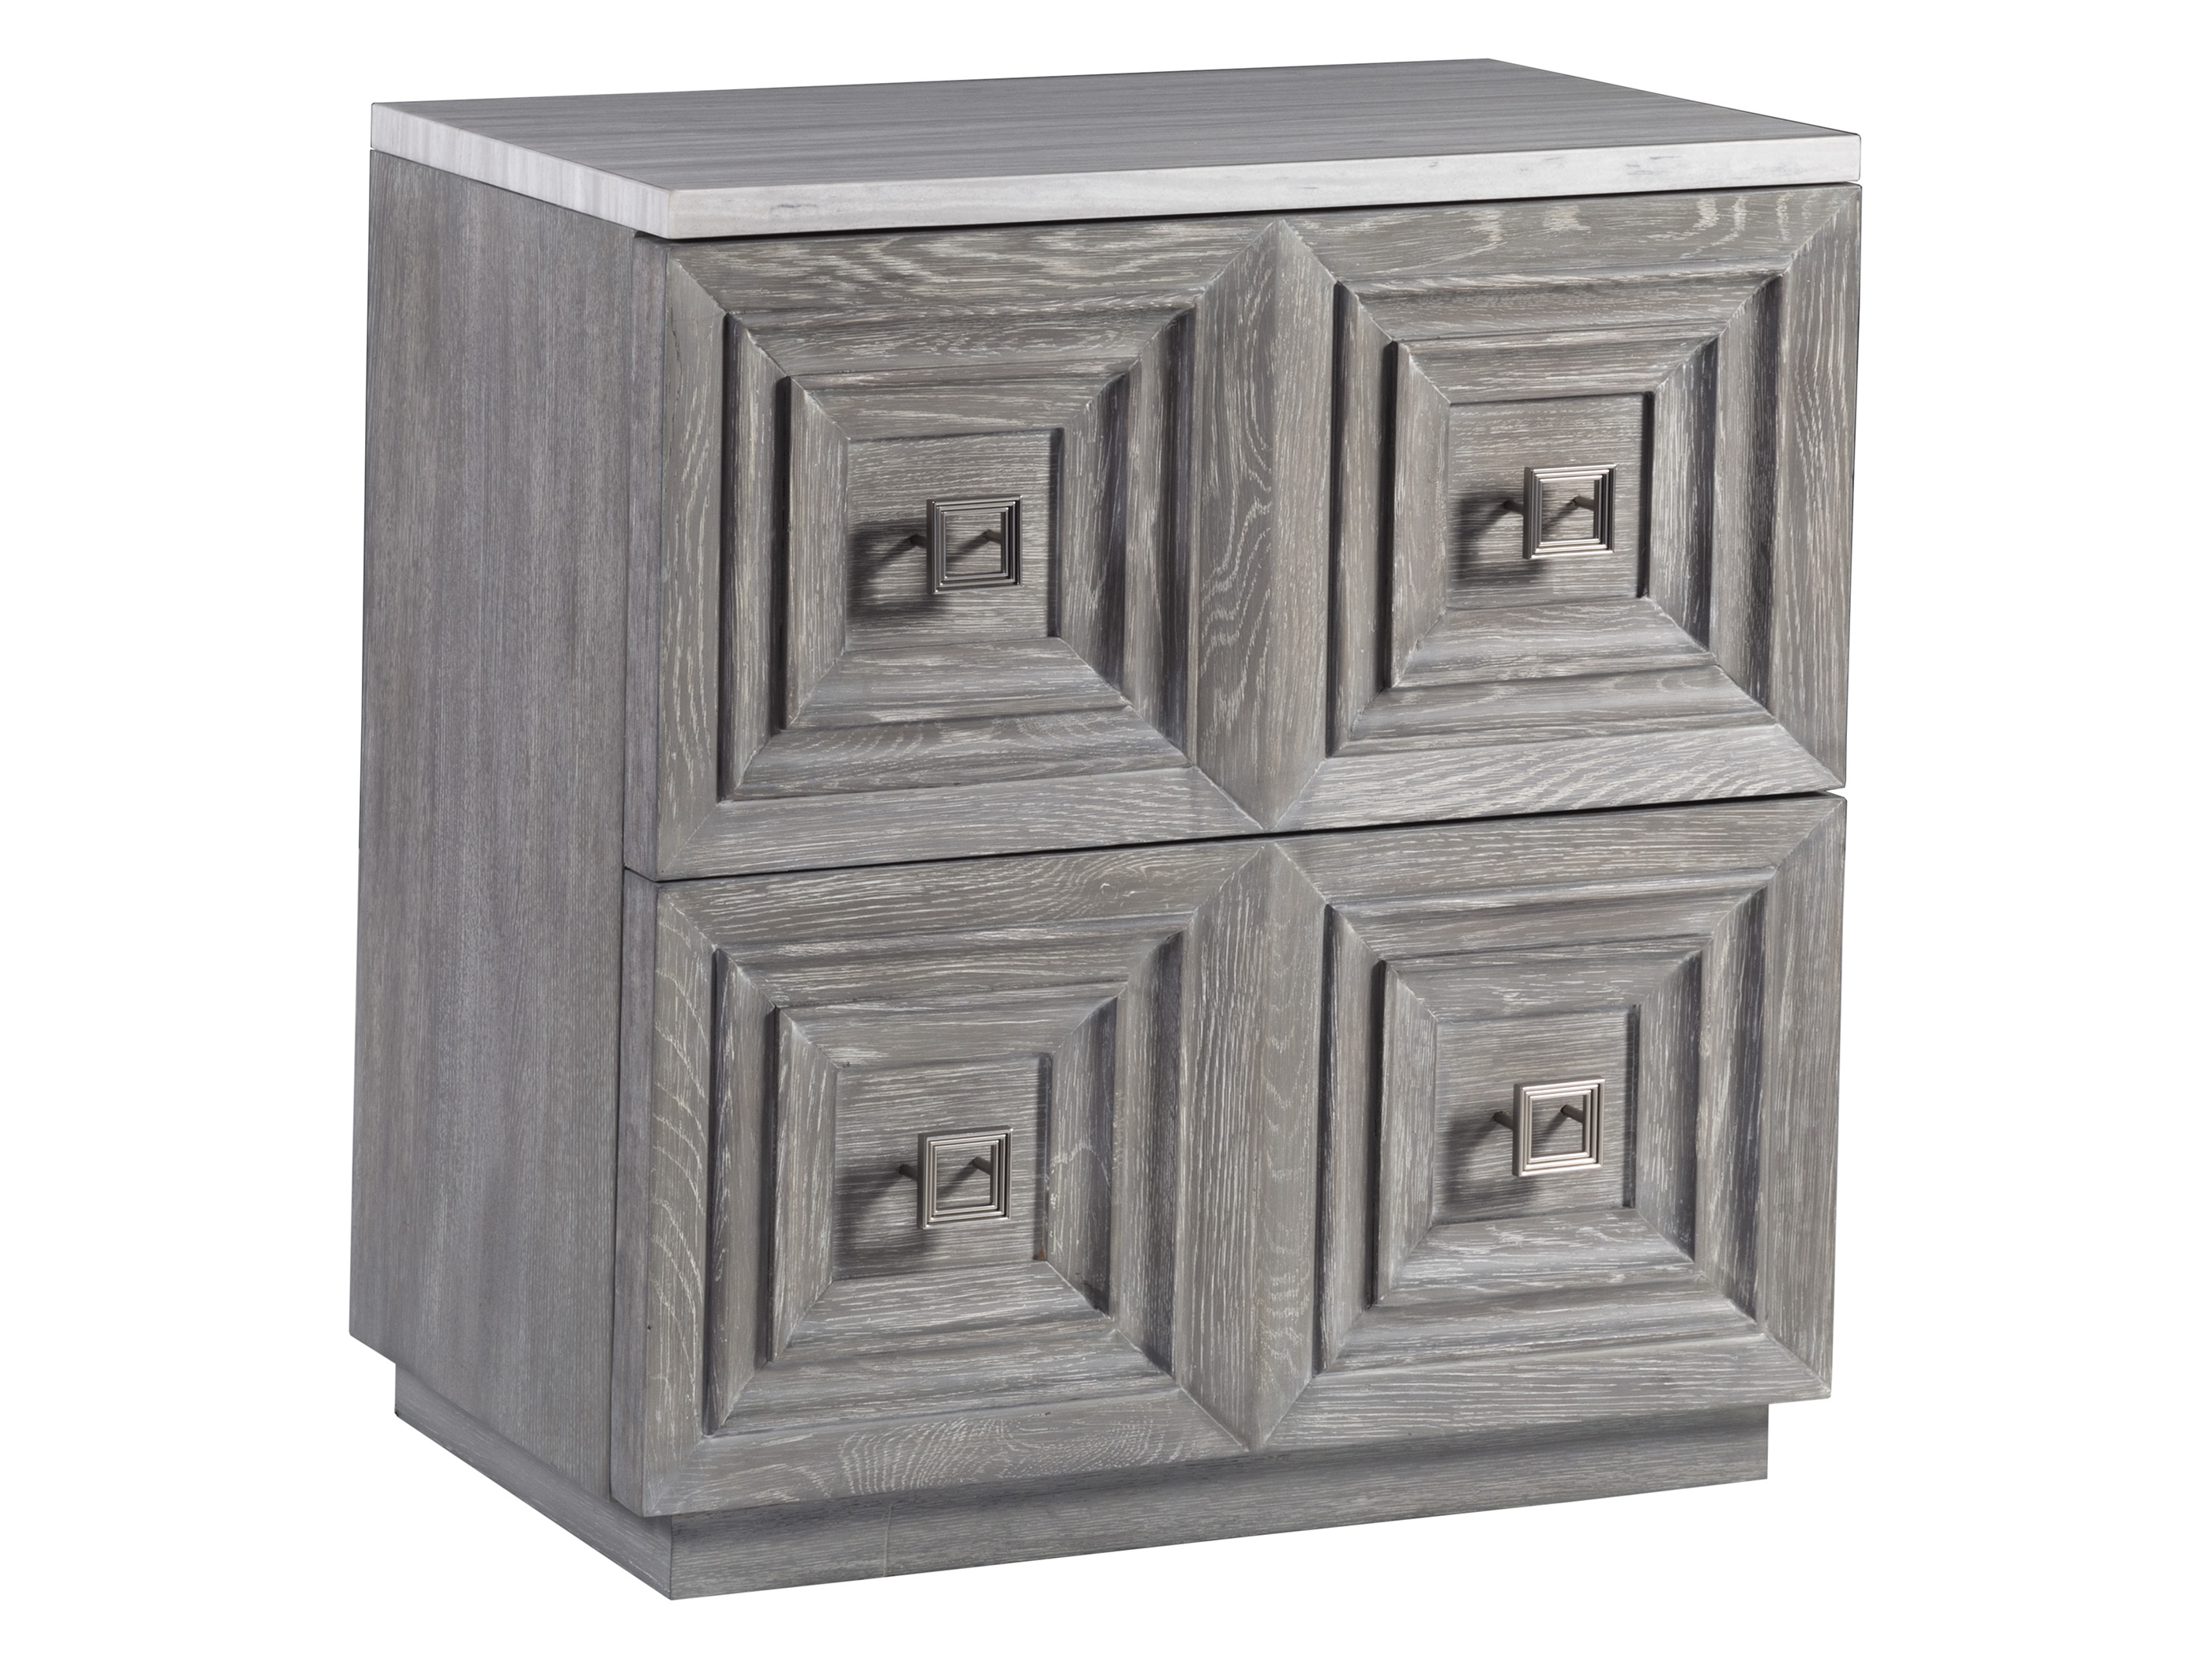 Van Dyck Accent Chest by Artistica at Belfort Furniture